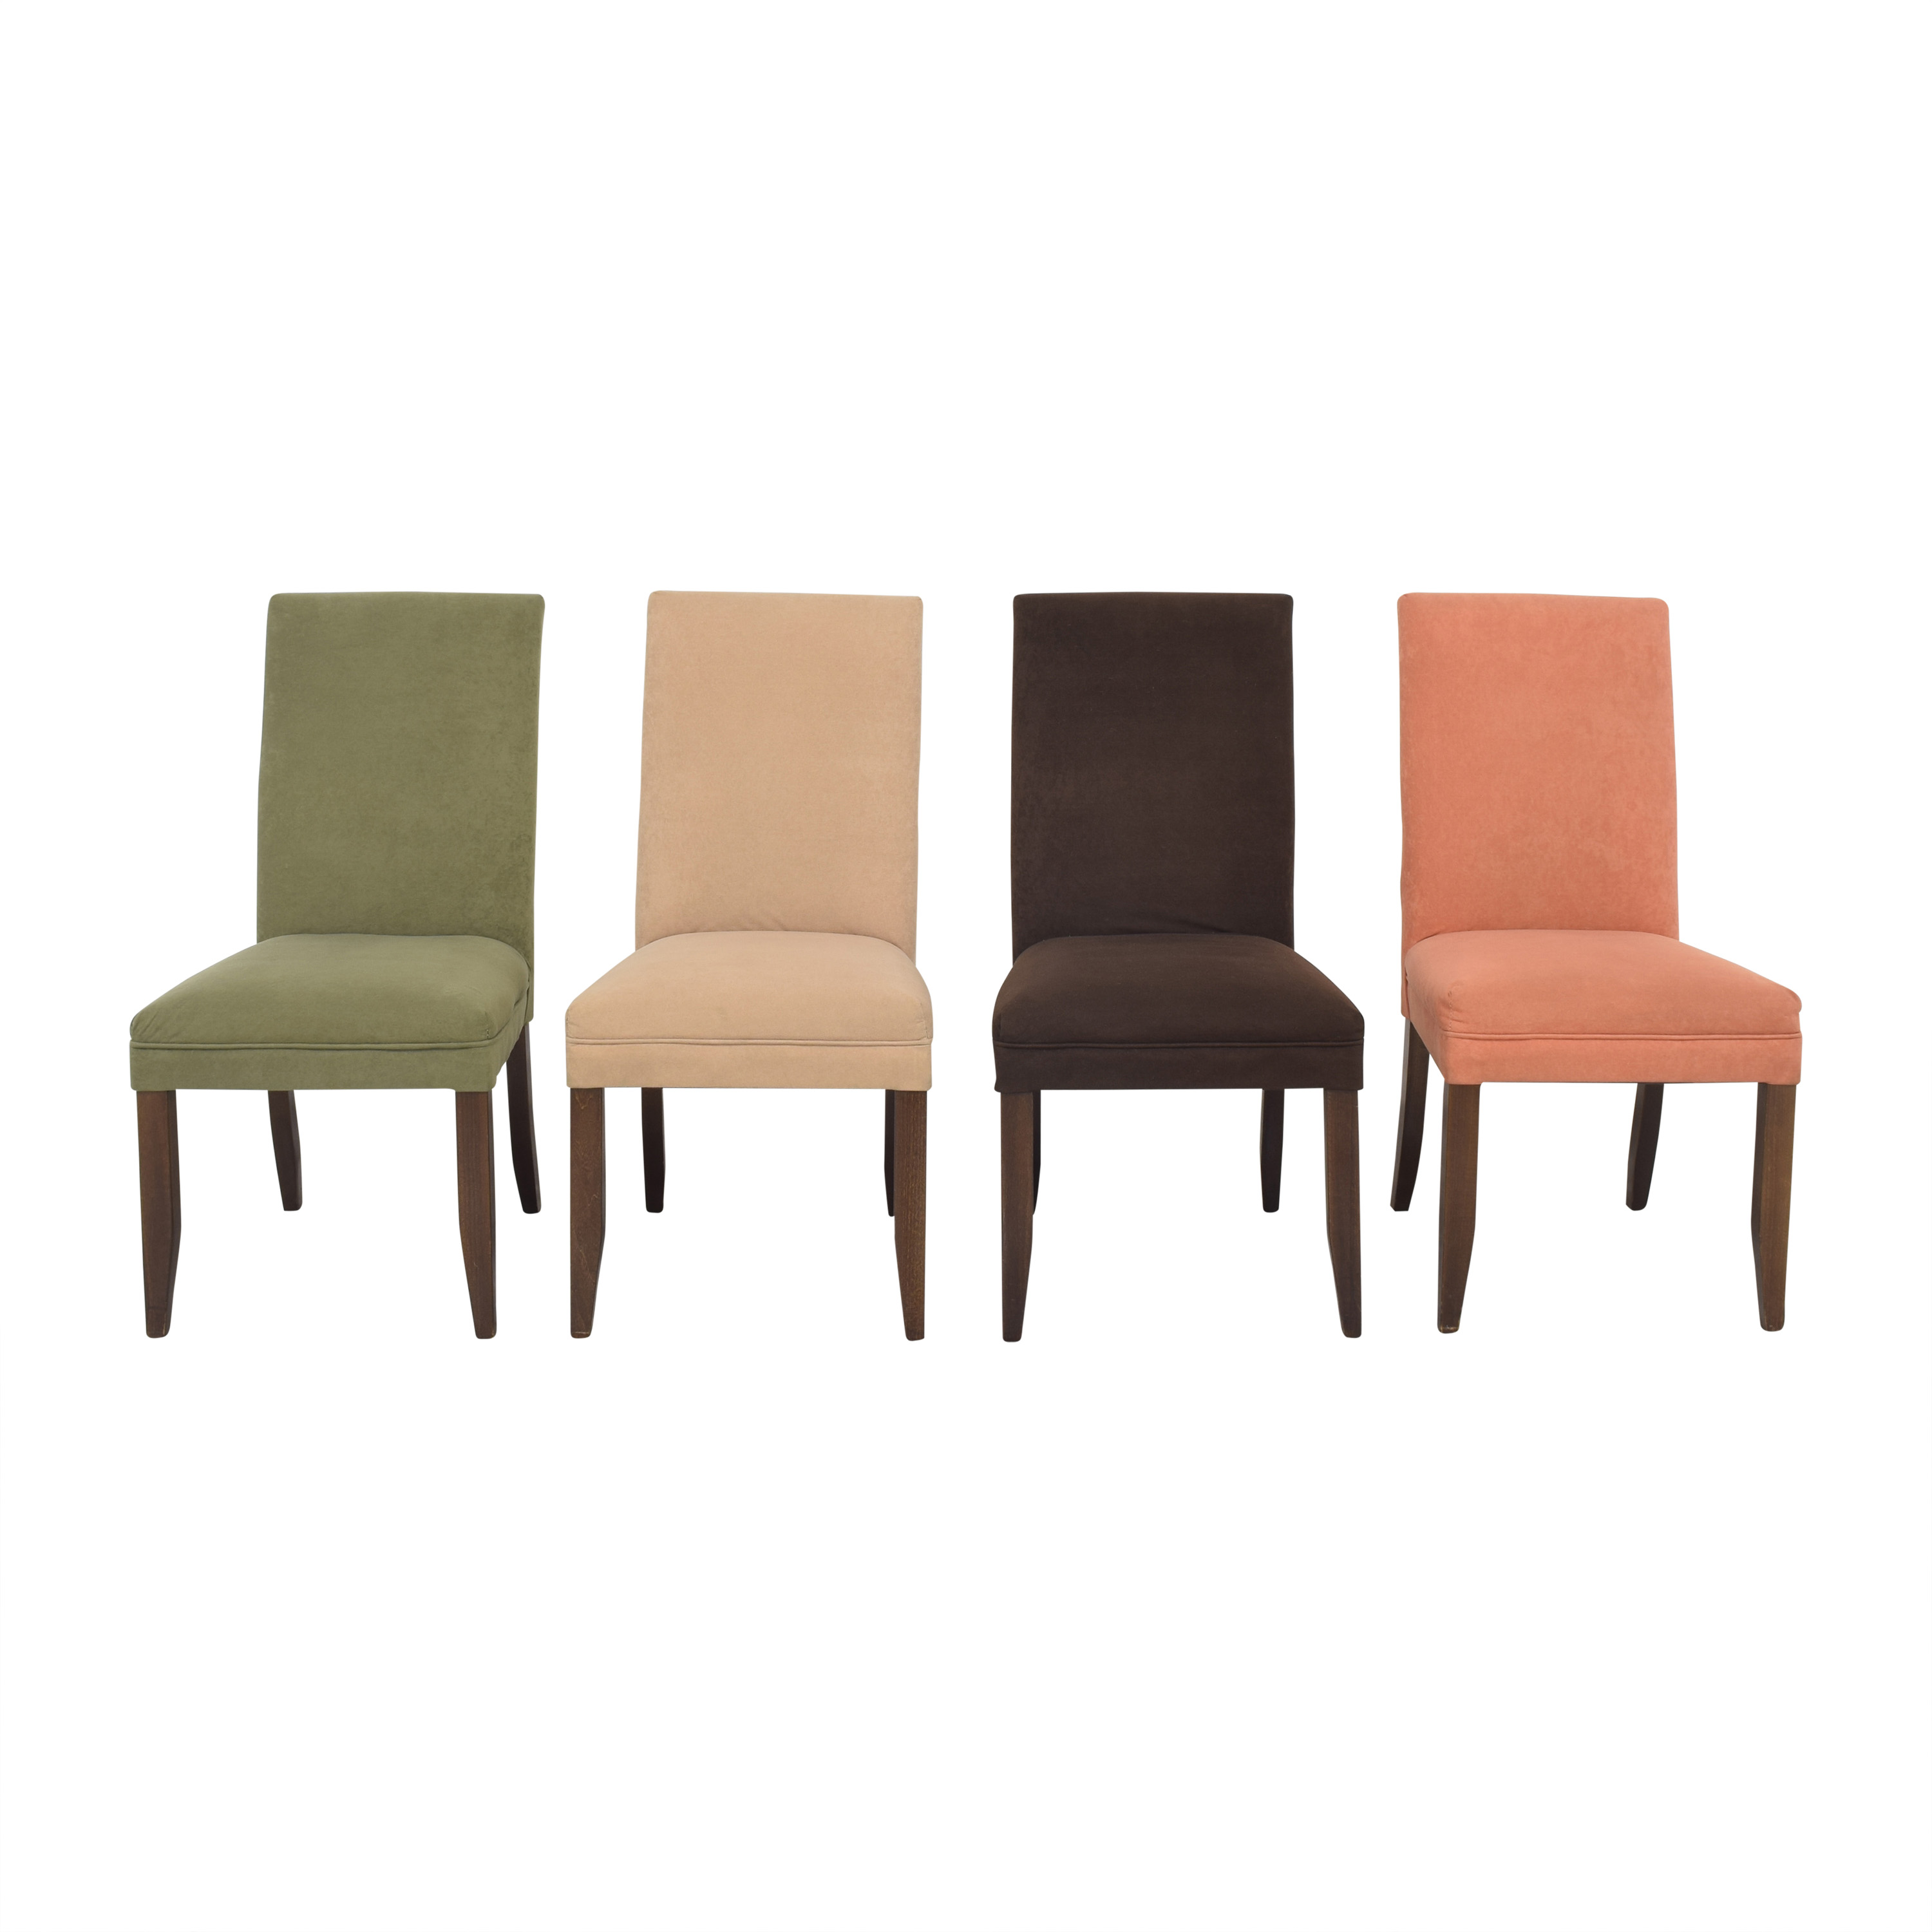 Crate & Barrel Crate & Barrel Dining Chairs ct